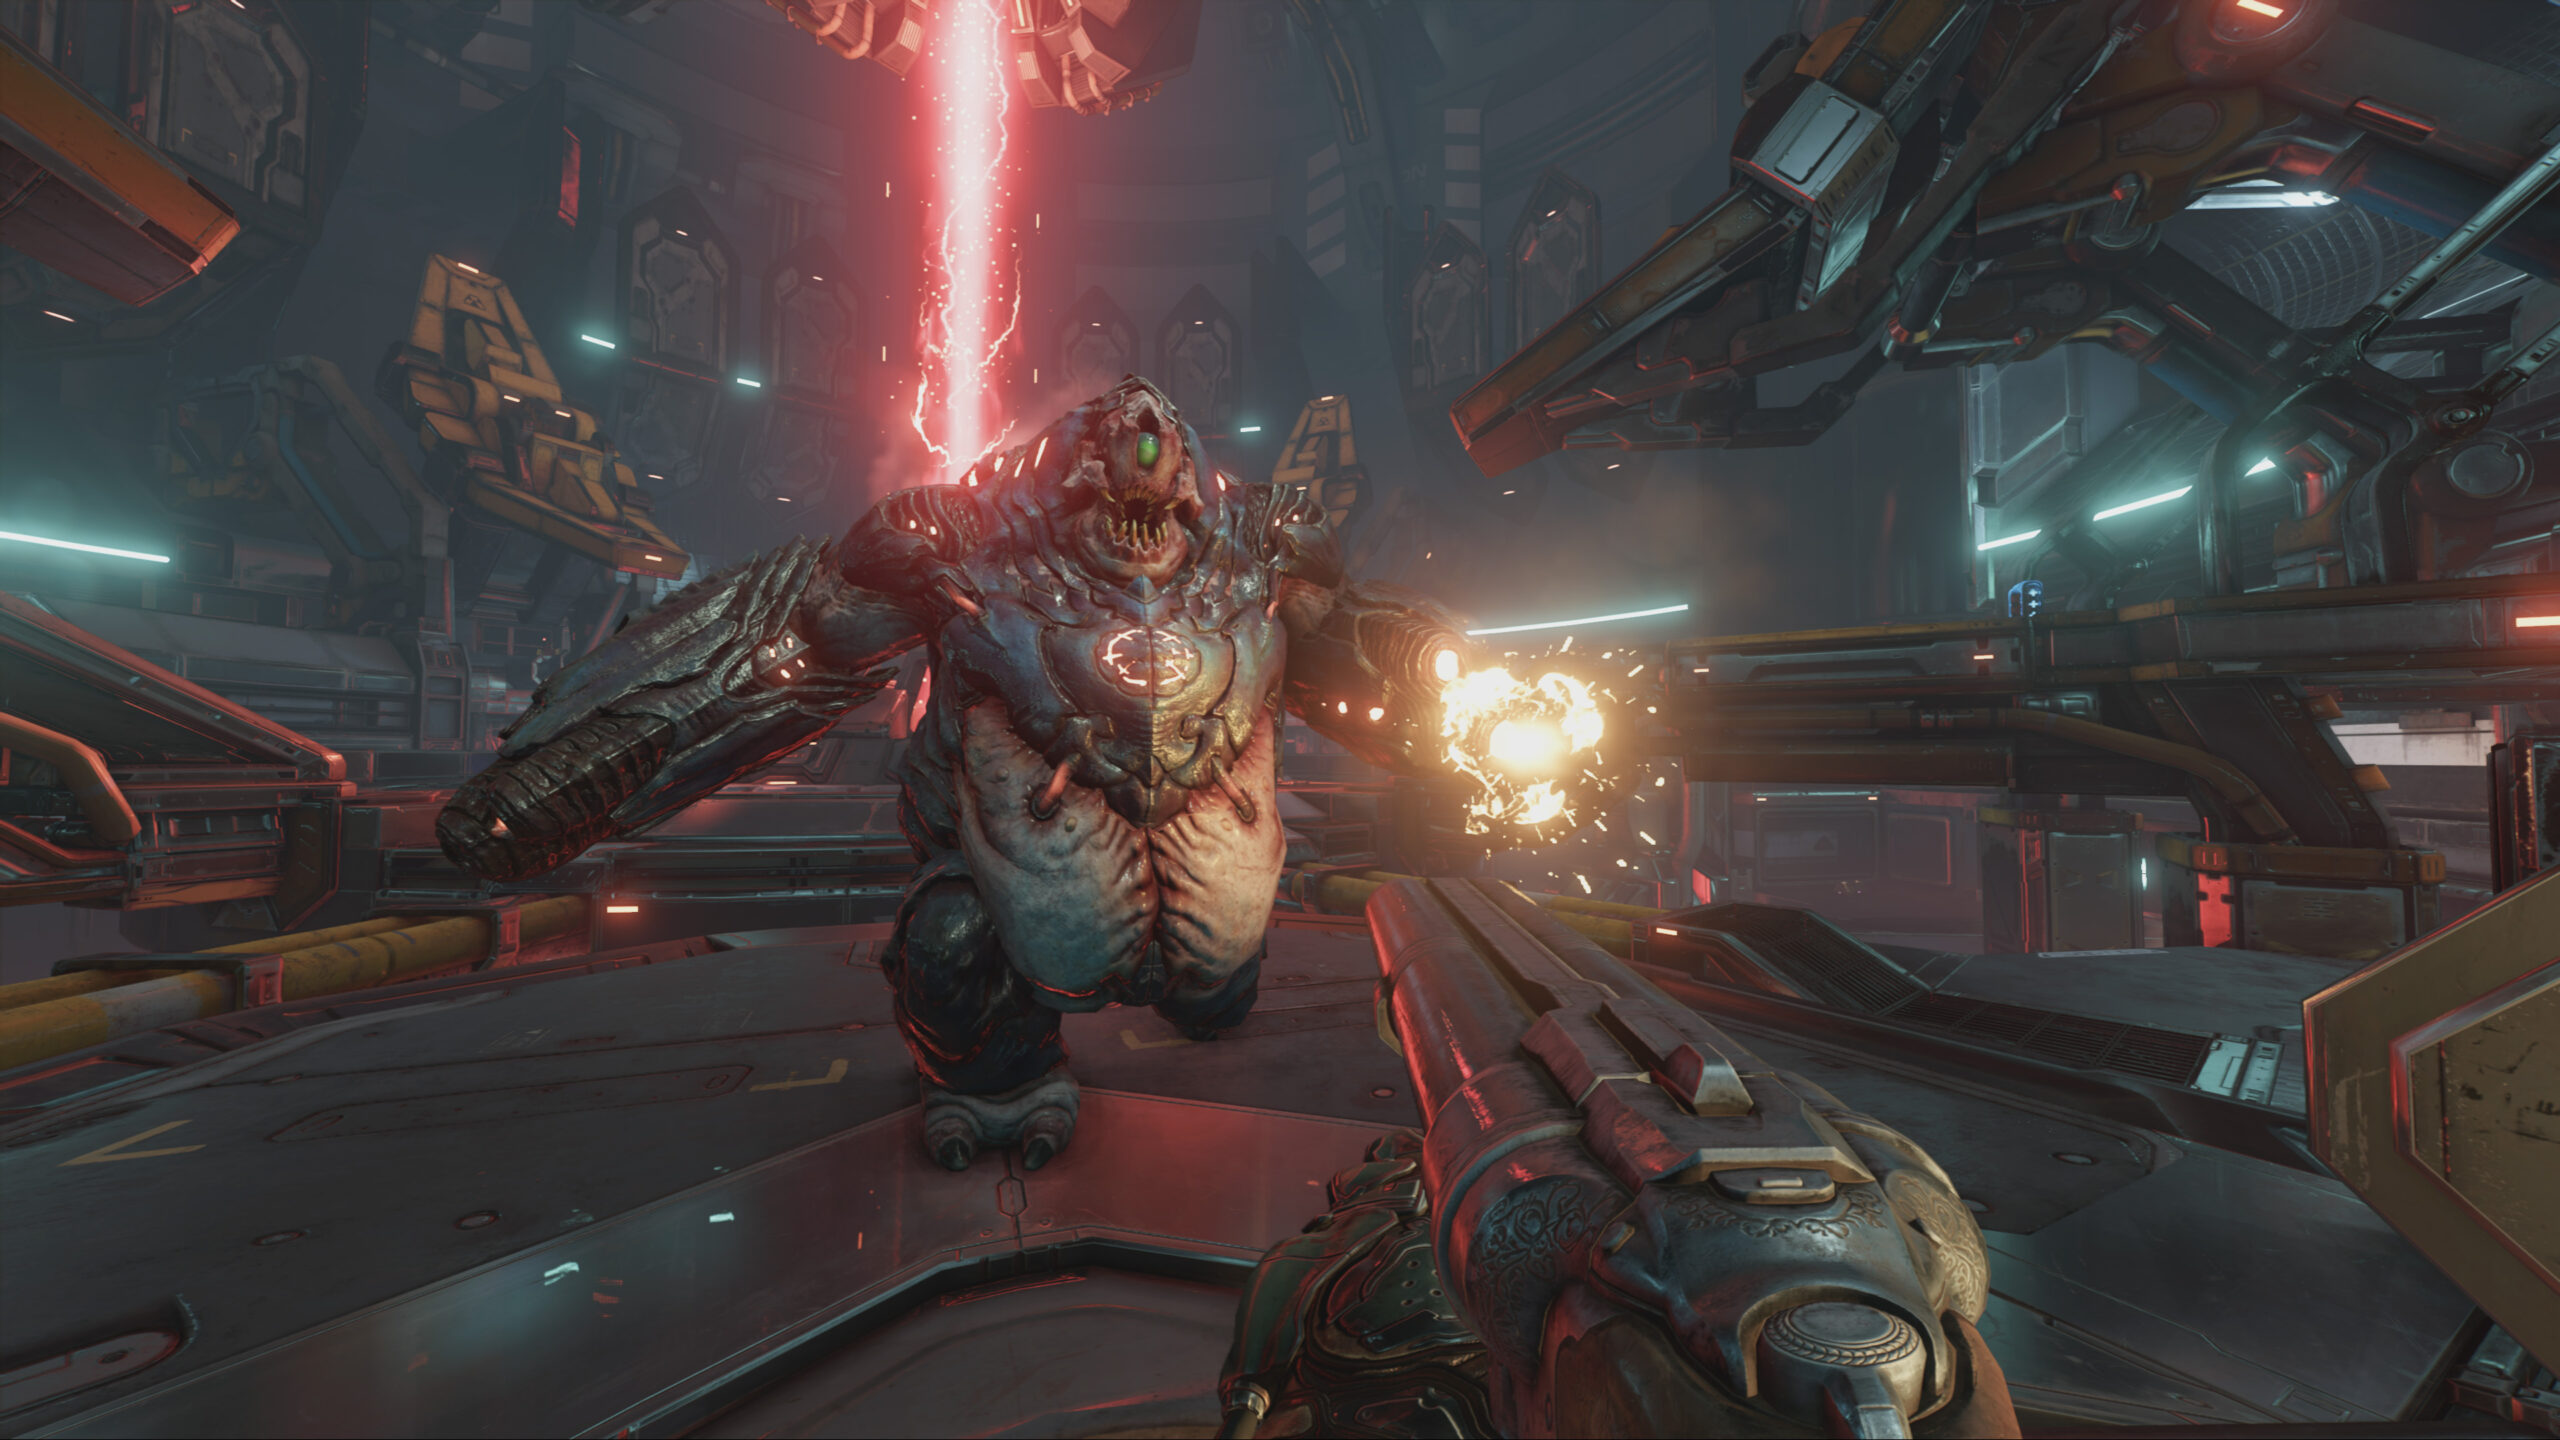 best game soundtracks - screenshot from doom of monster|game sountracks - screenshot of diamond city radio buiding in fallout 4